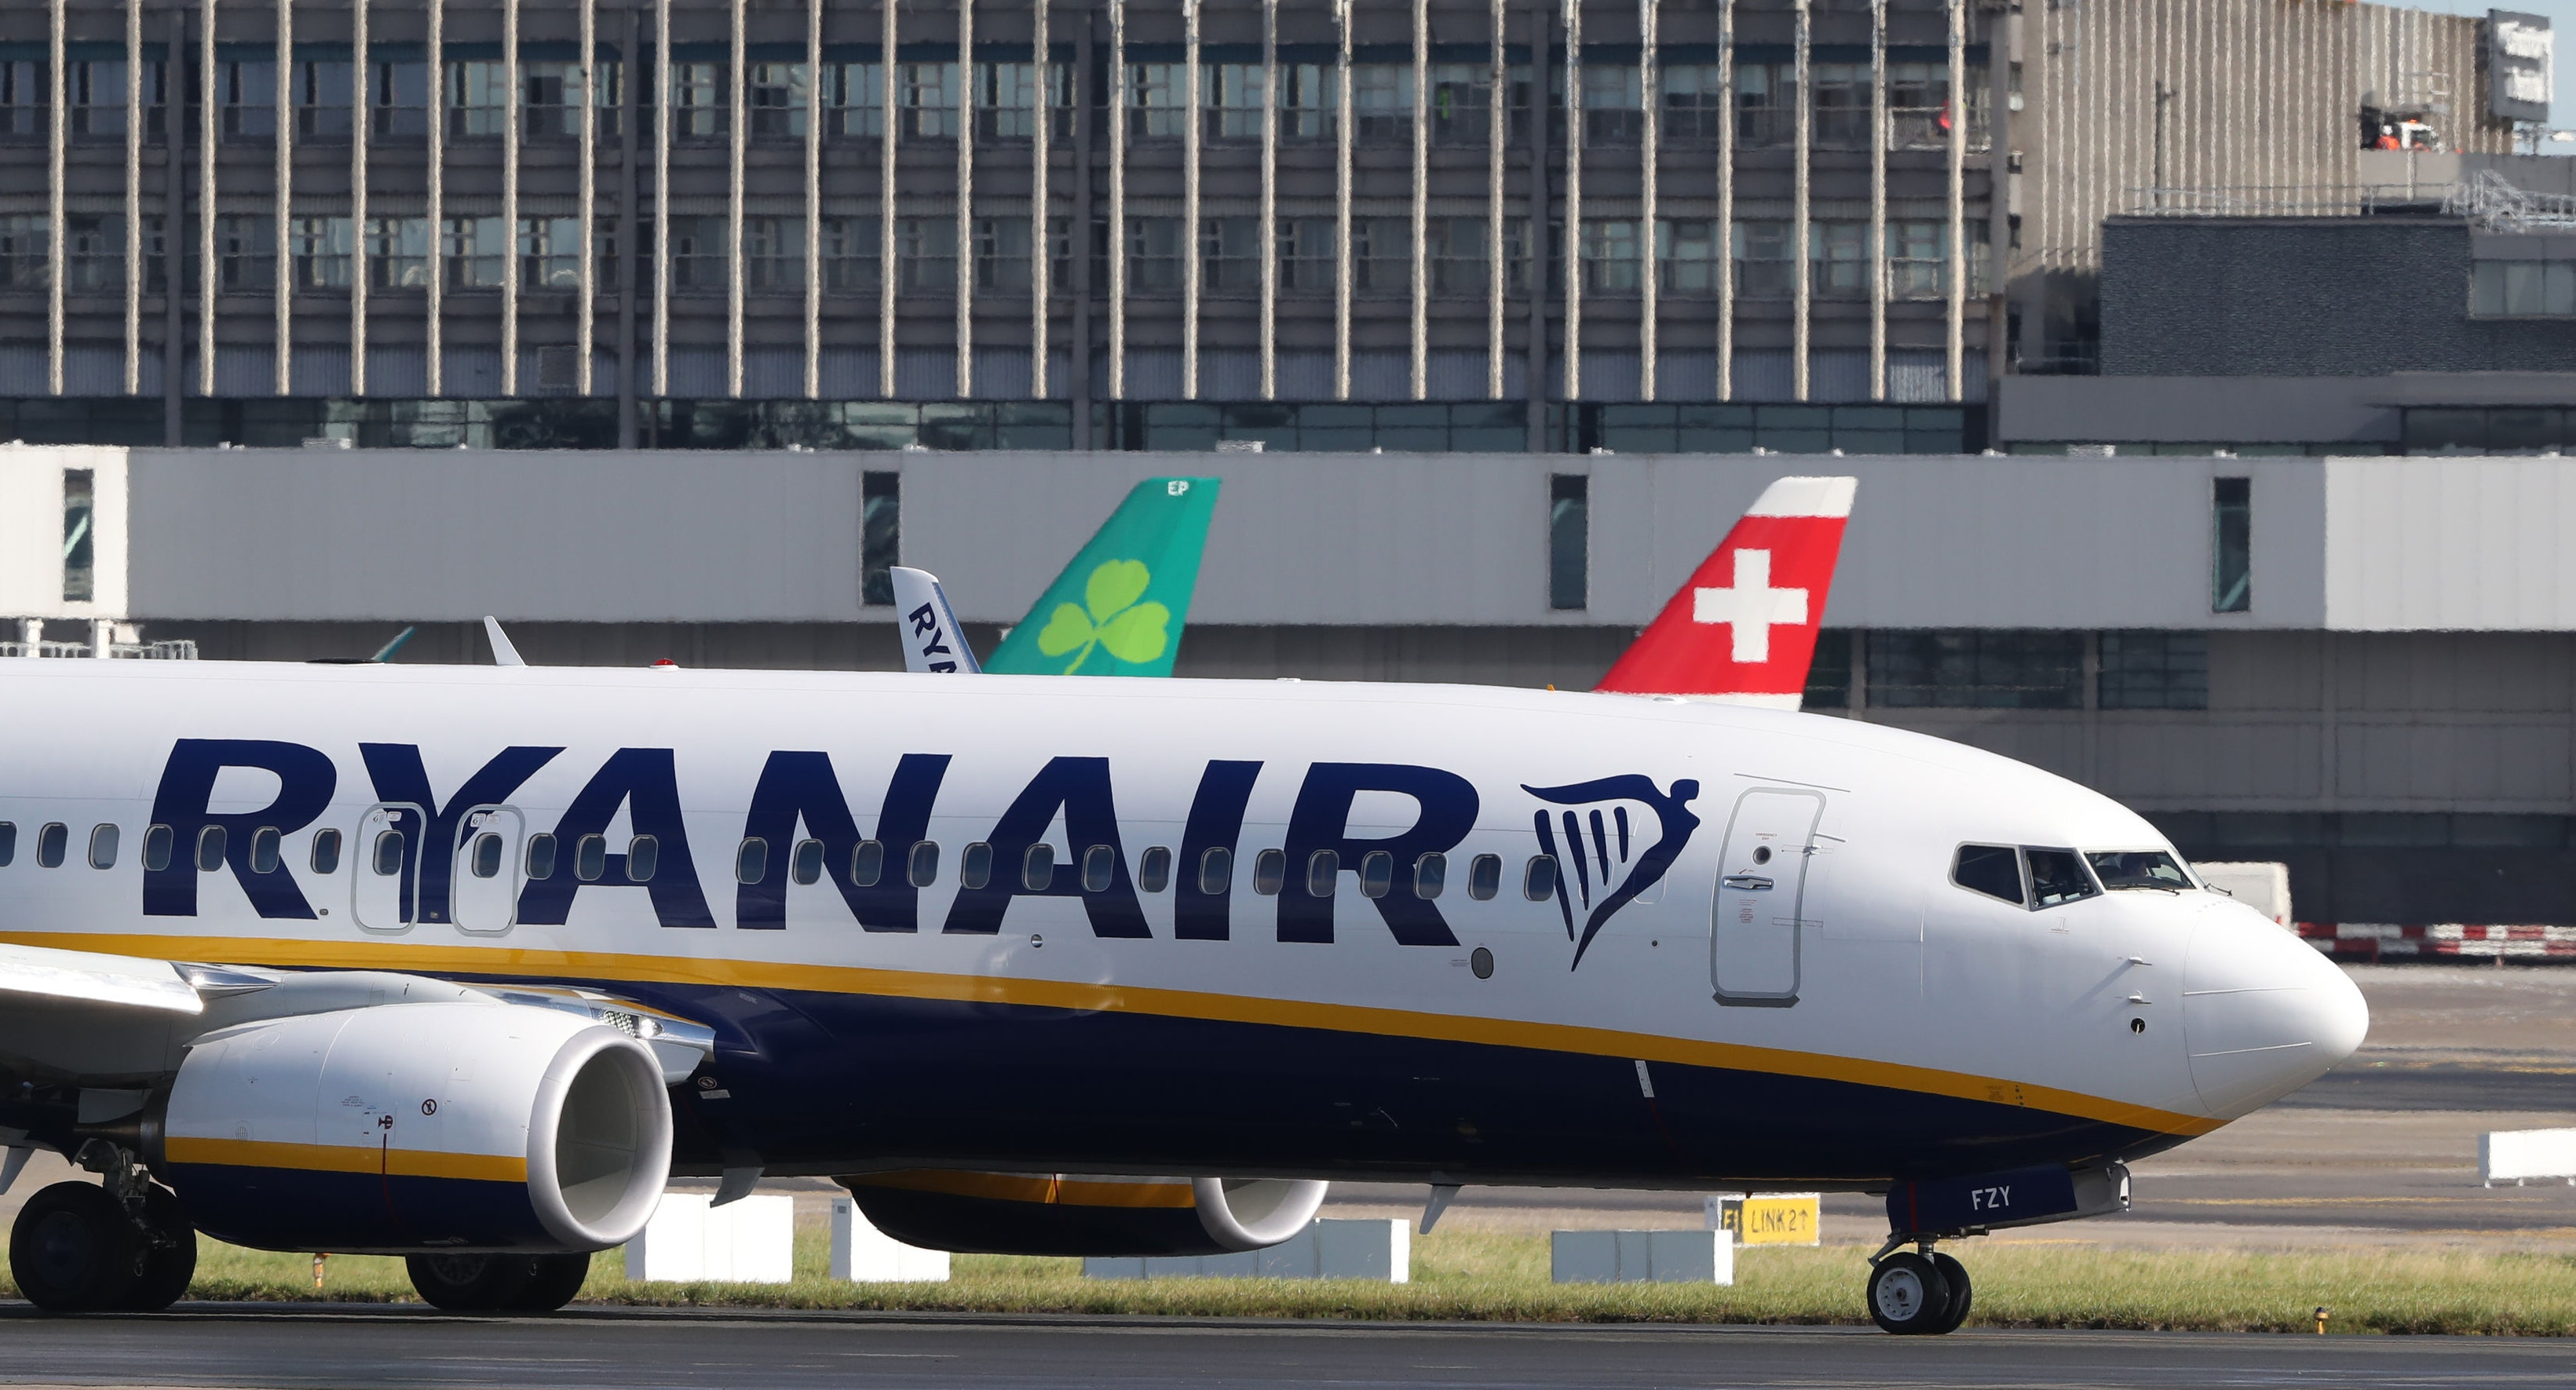 RyanAir threatens to ground planes after Brexit